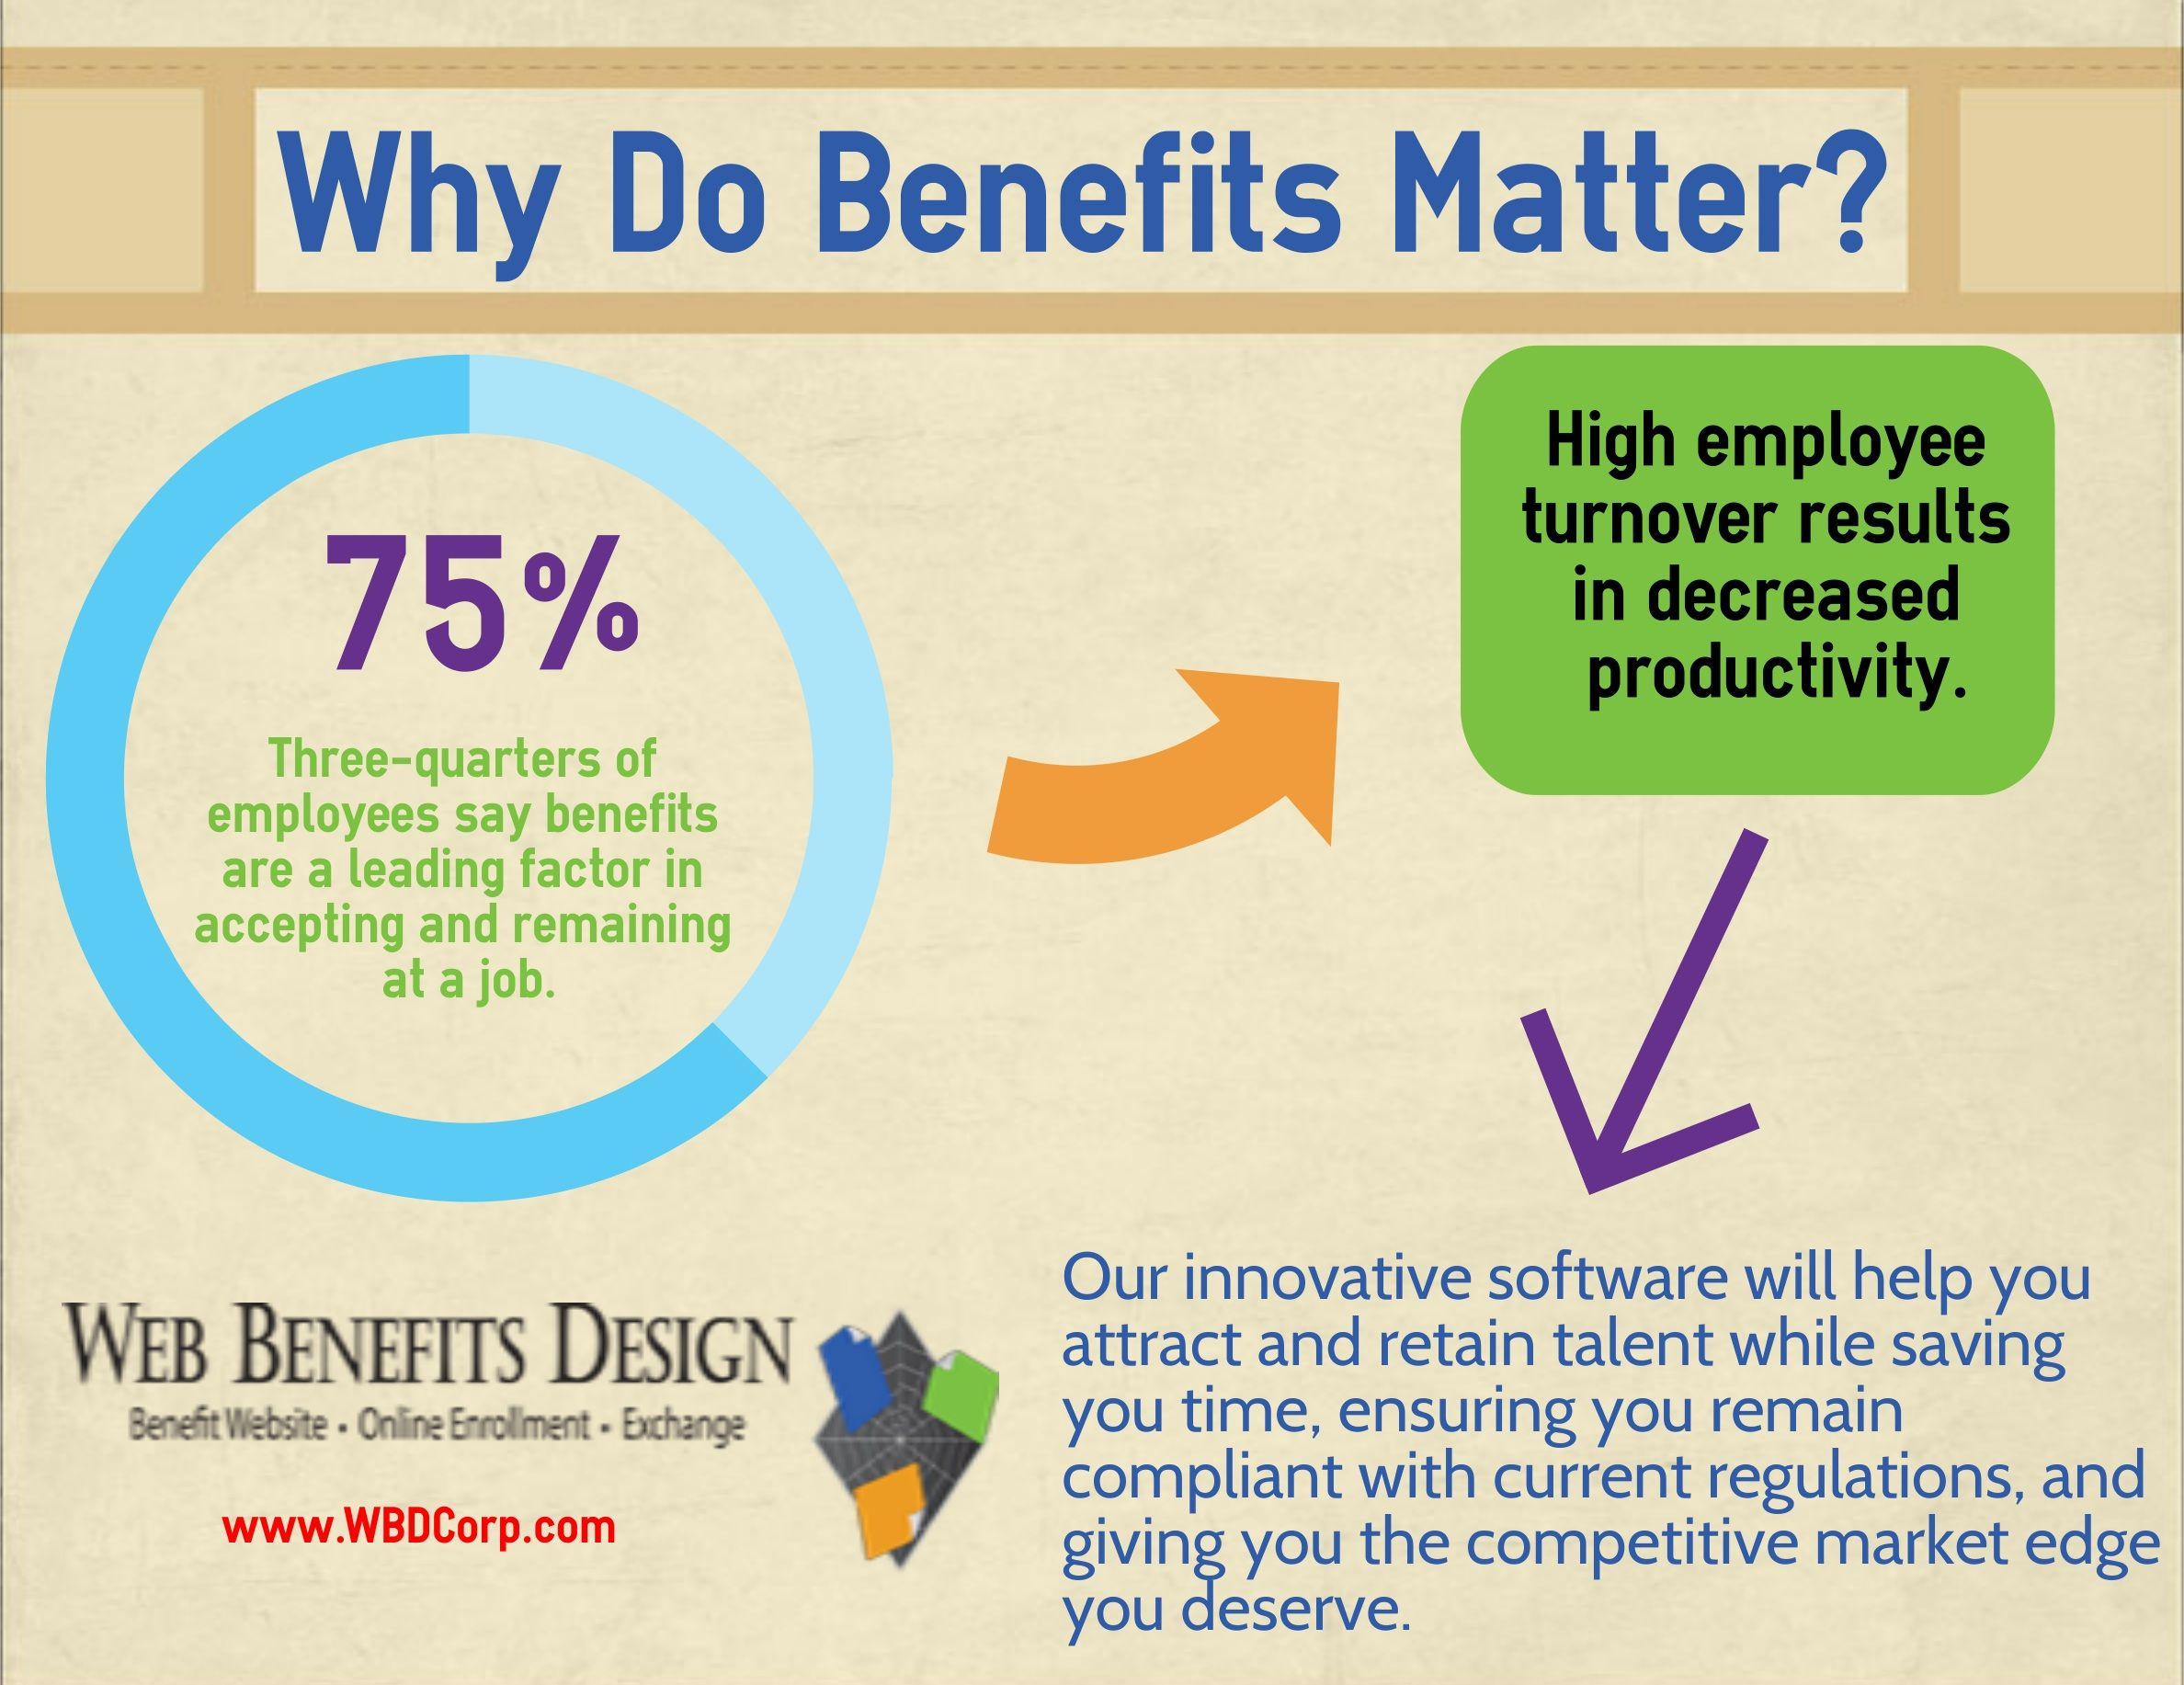 Why Benefits Matter Hr Benefits Insurance Work Www Wbdcorp